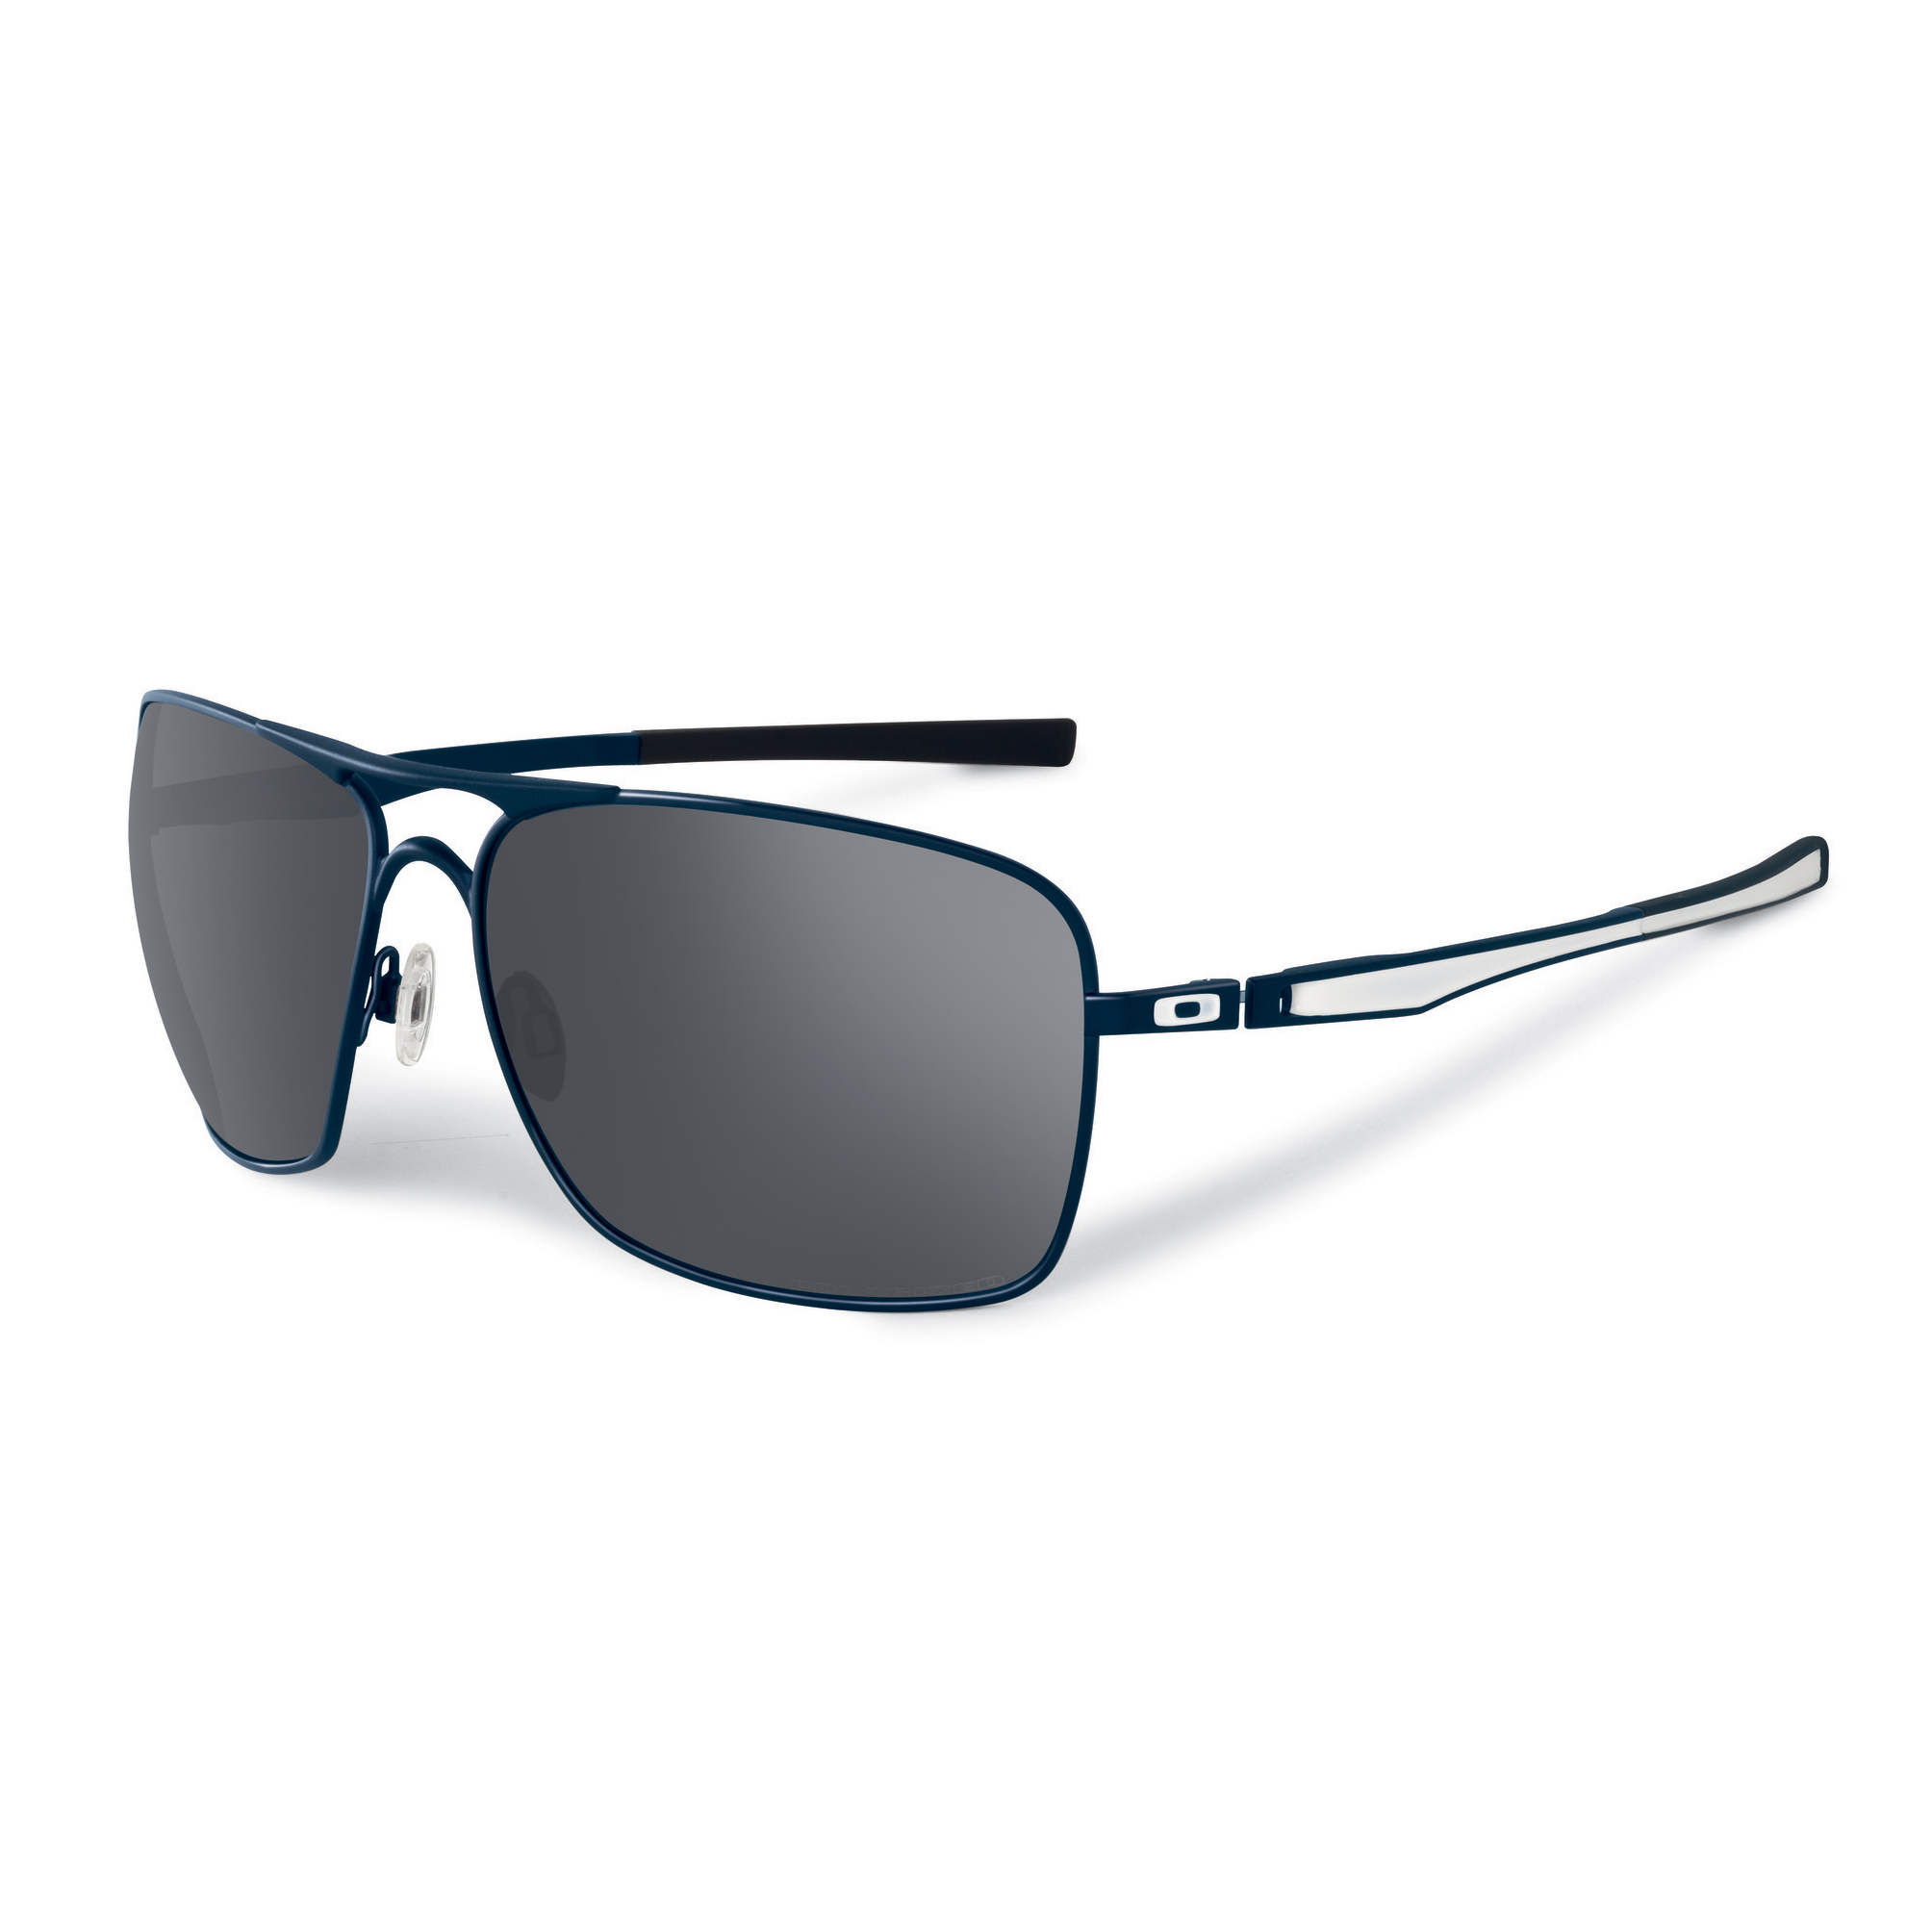 Oakley Plaintiff Squared Sunglasses Black